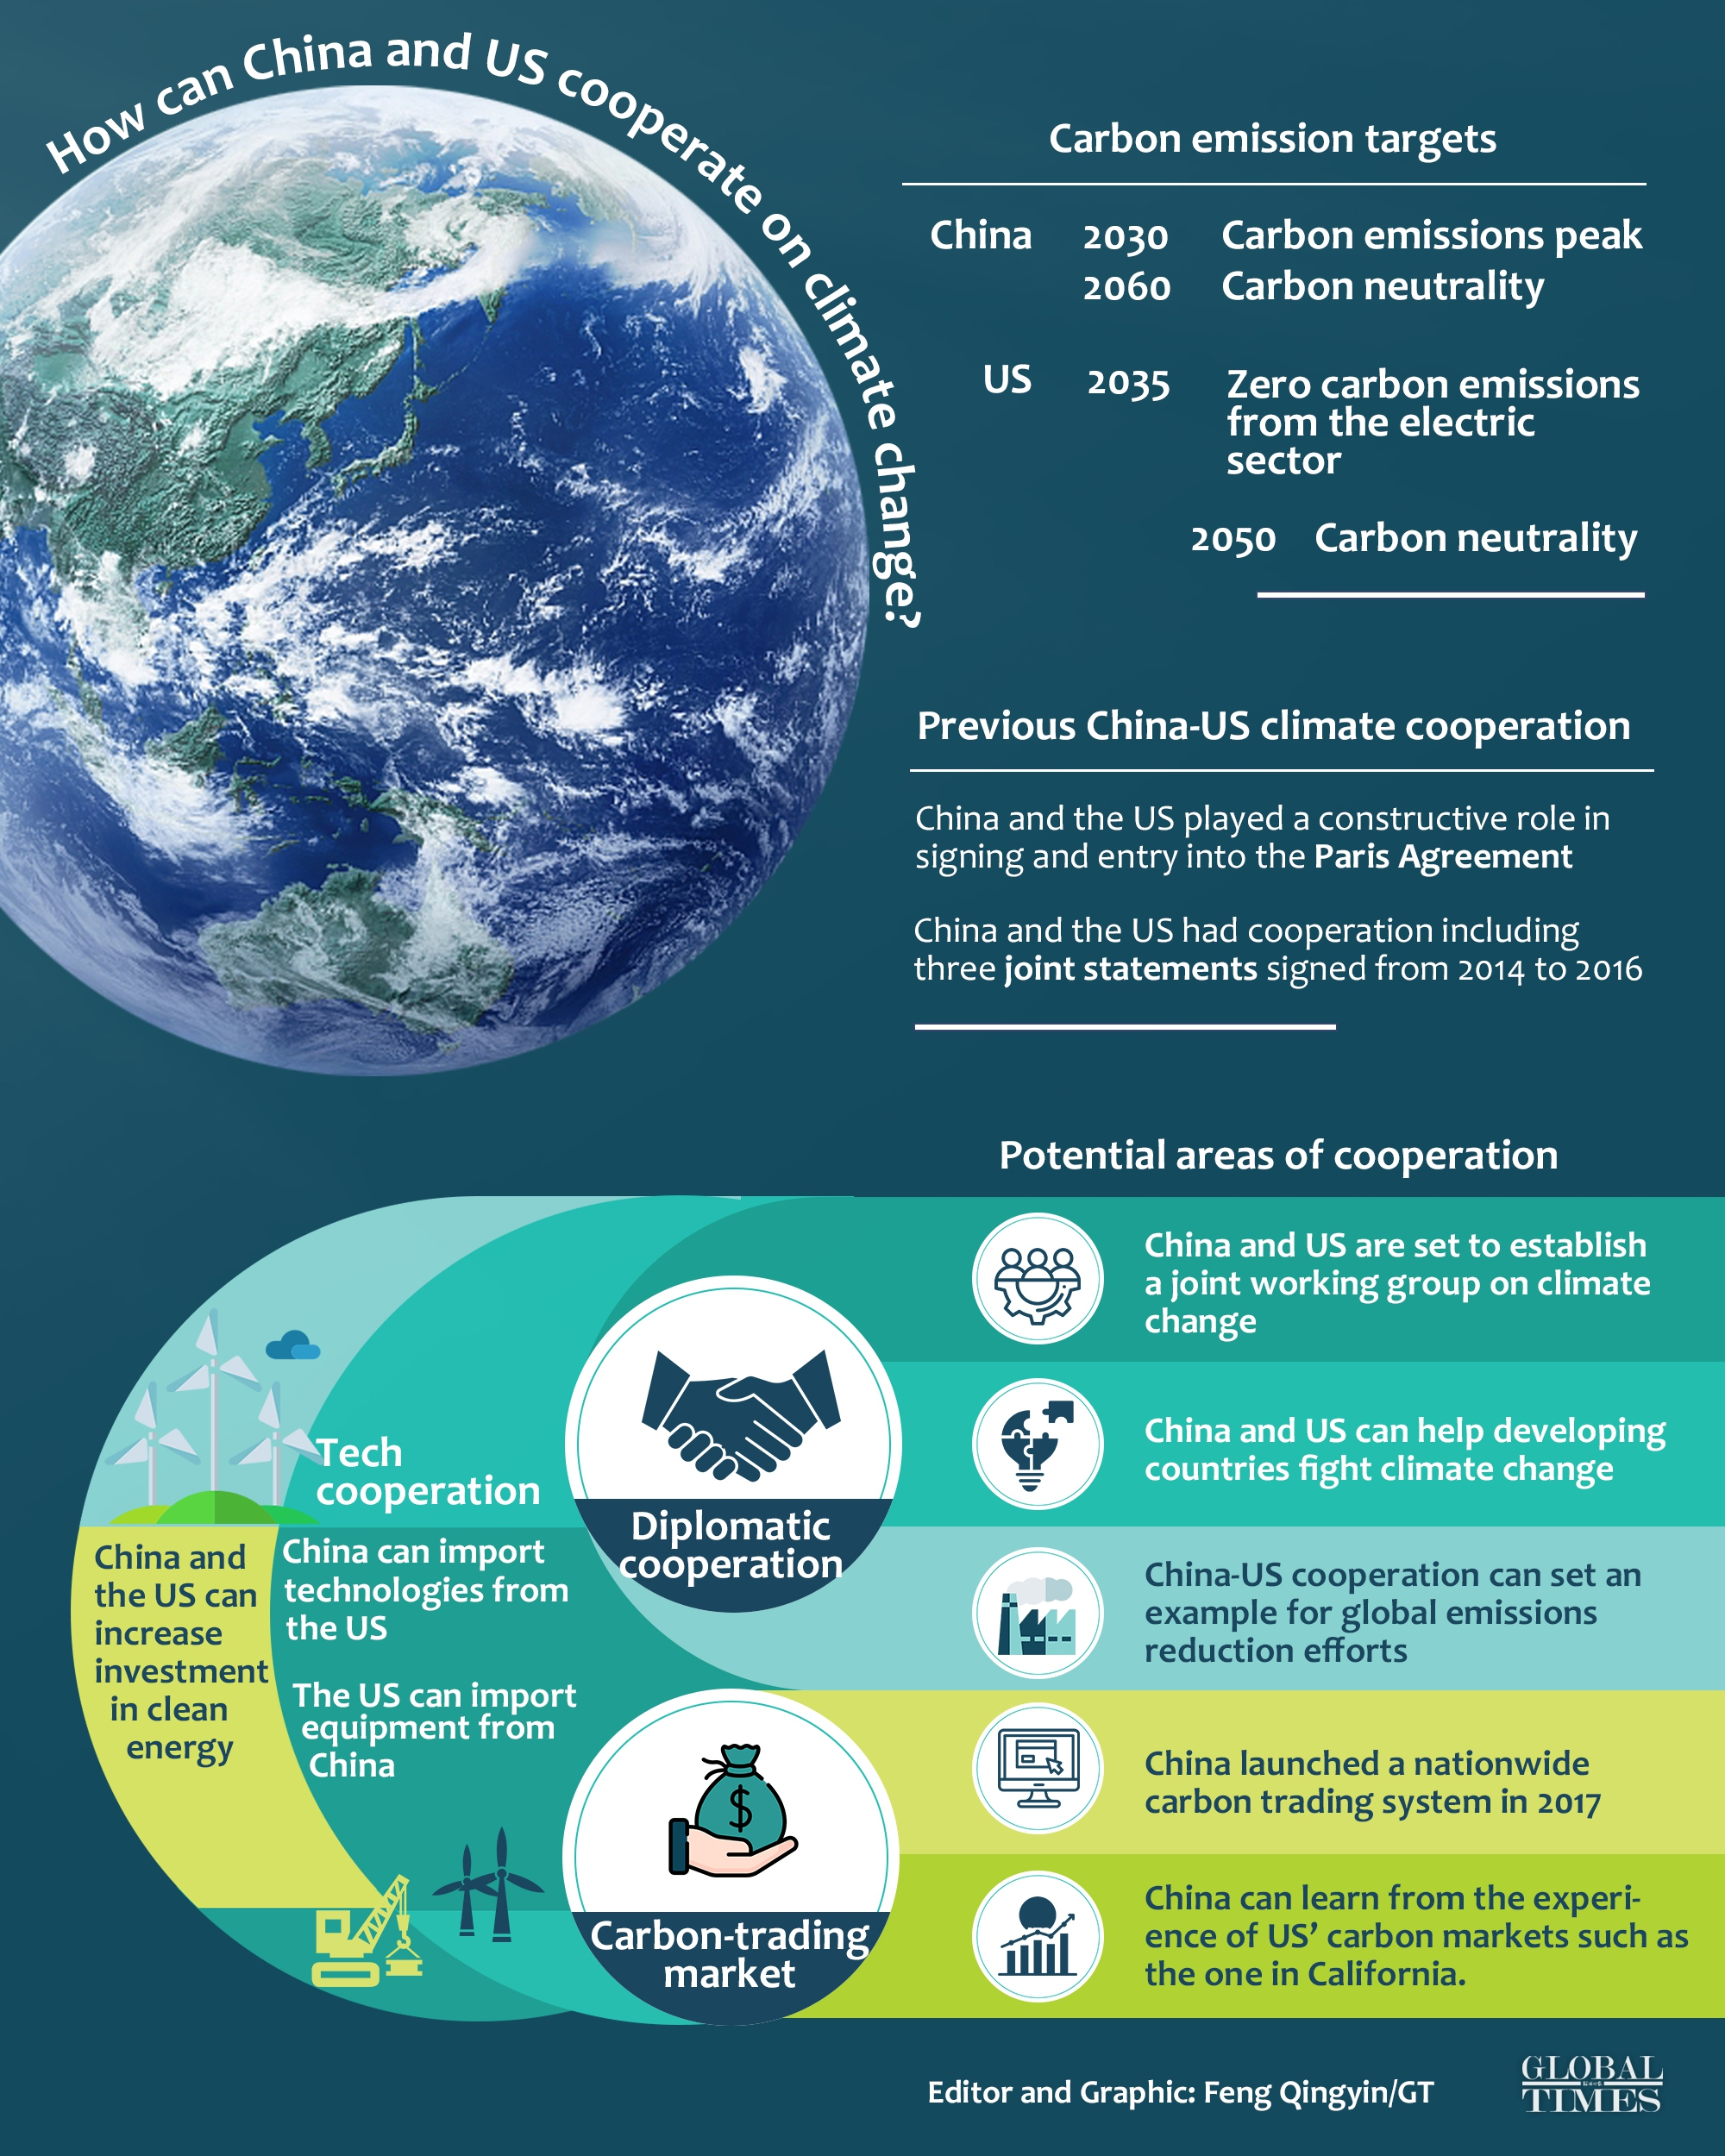 How can China and US cooperate on climate change? Graphic:Feng Qingyin/GT